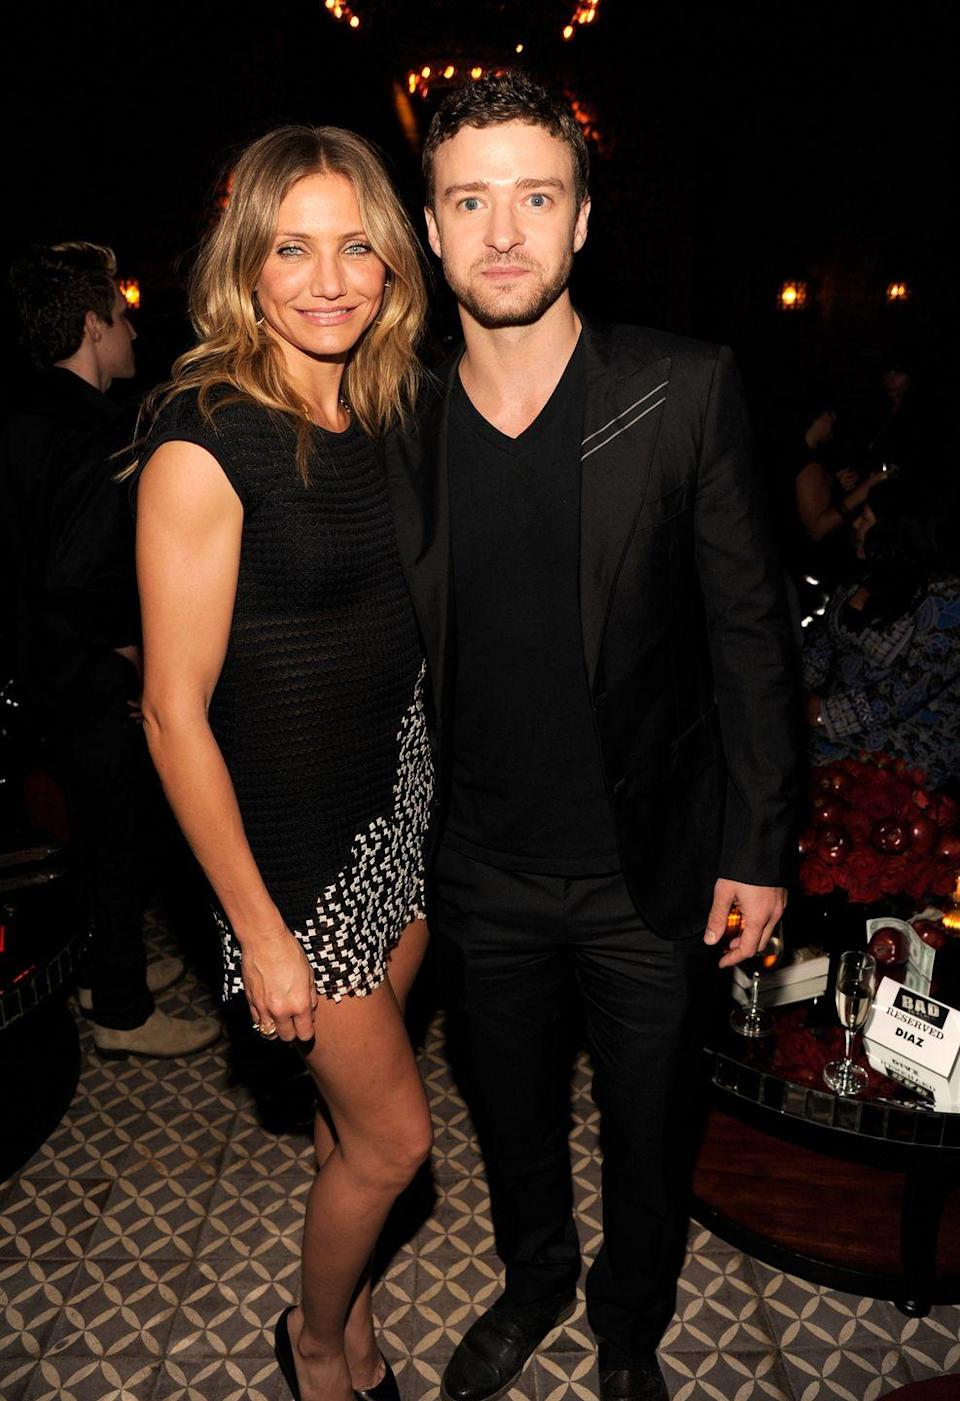 <p>Diaz and Timberlake began dating in 2003 and called it quits in 2007. Timberlake started dating now wife Jessica Biel shortly afterwards, but reunited with former flame Diaz for the comedy film <em>Bad Teacher</em>—in which they had a love scene. </p>